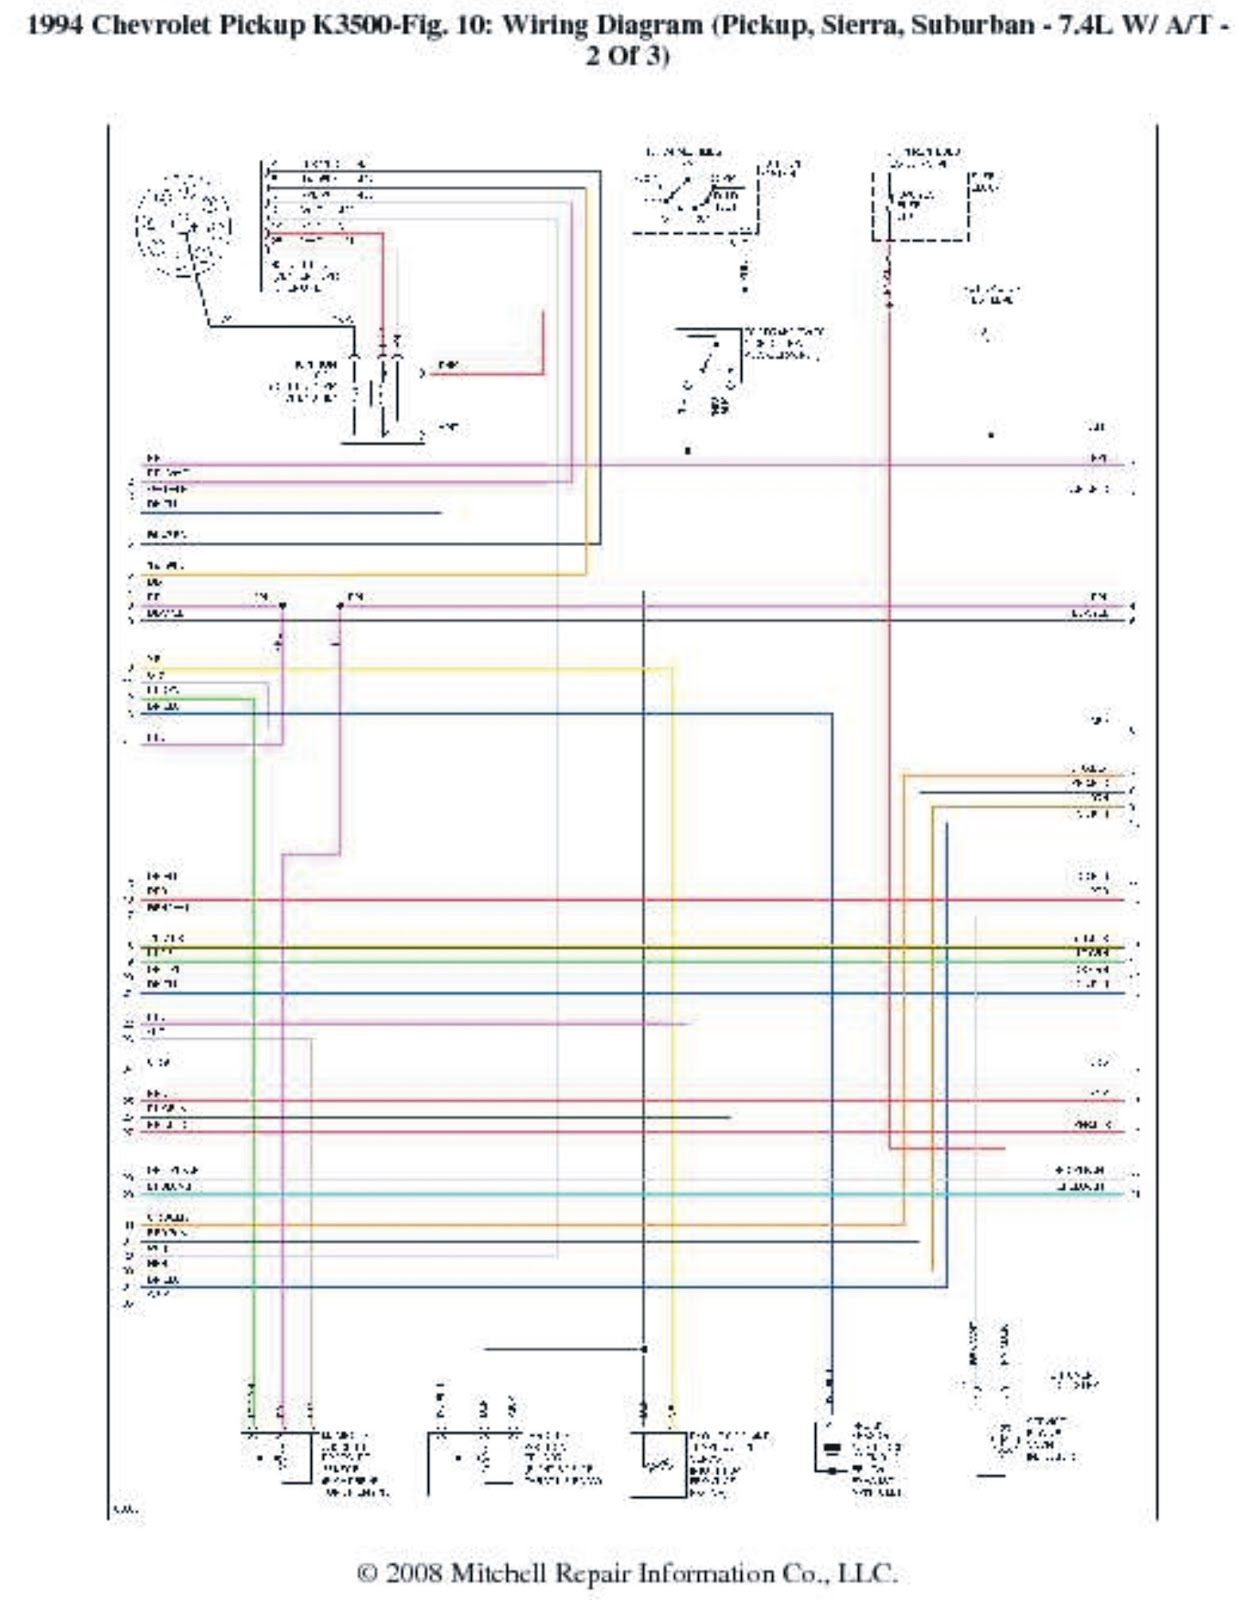 1994+chevrolet+pick+up+K3500 may 2011 wiring diagrams center 1982 chevy truck engine wiring diagram at creativeand.co